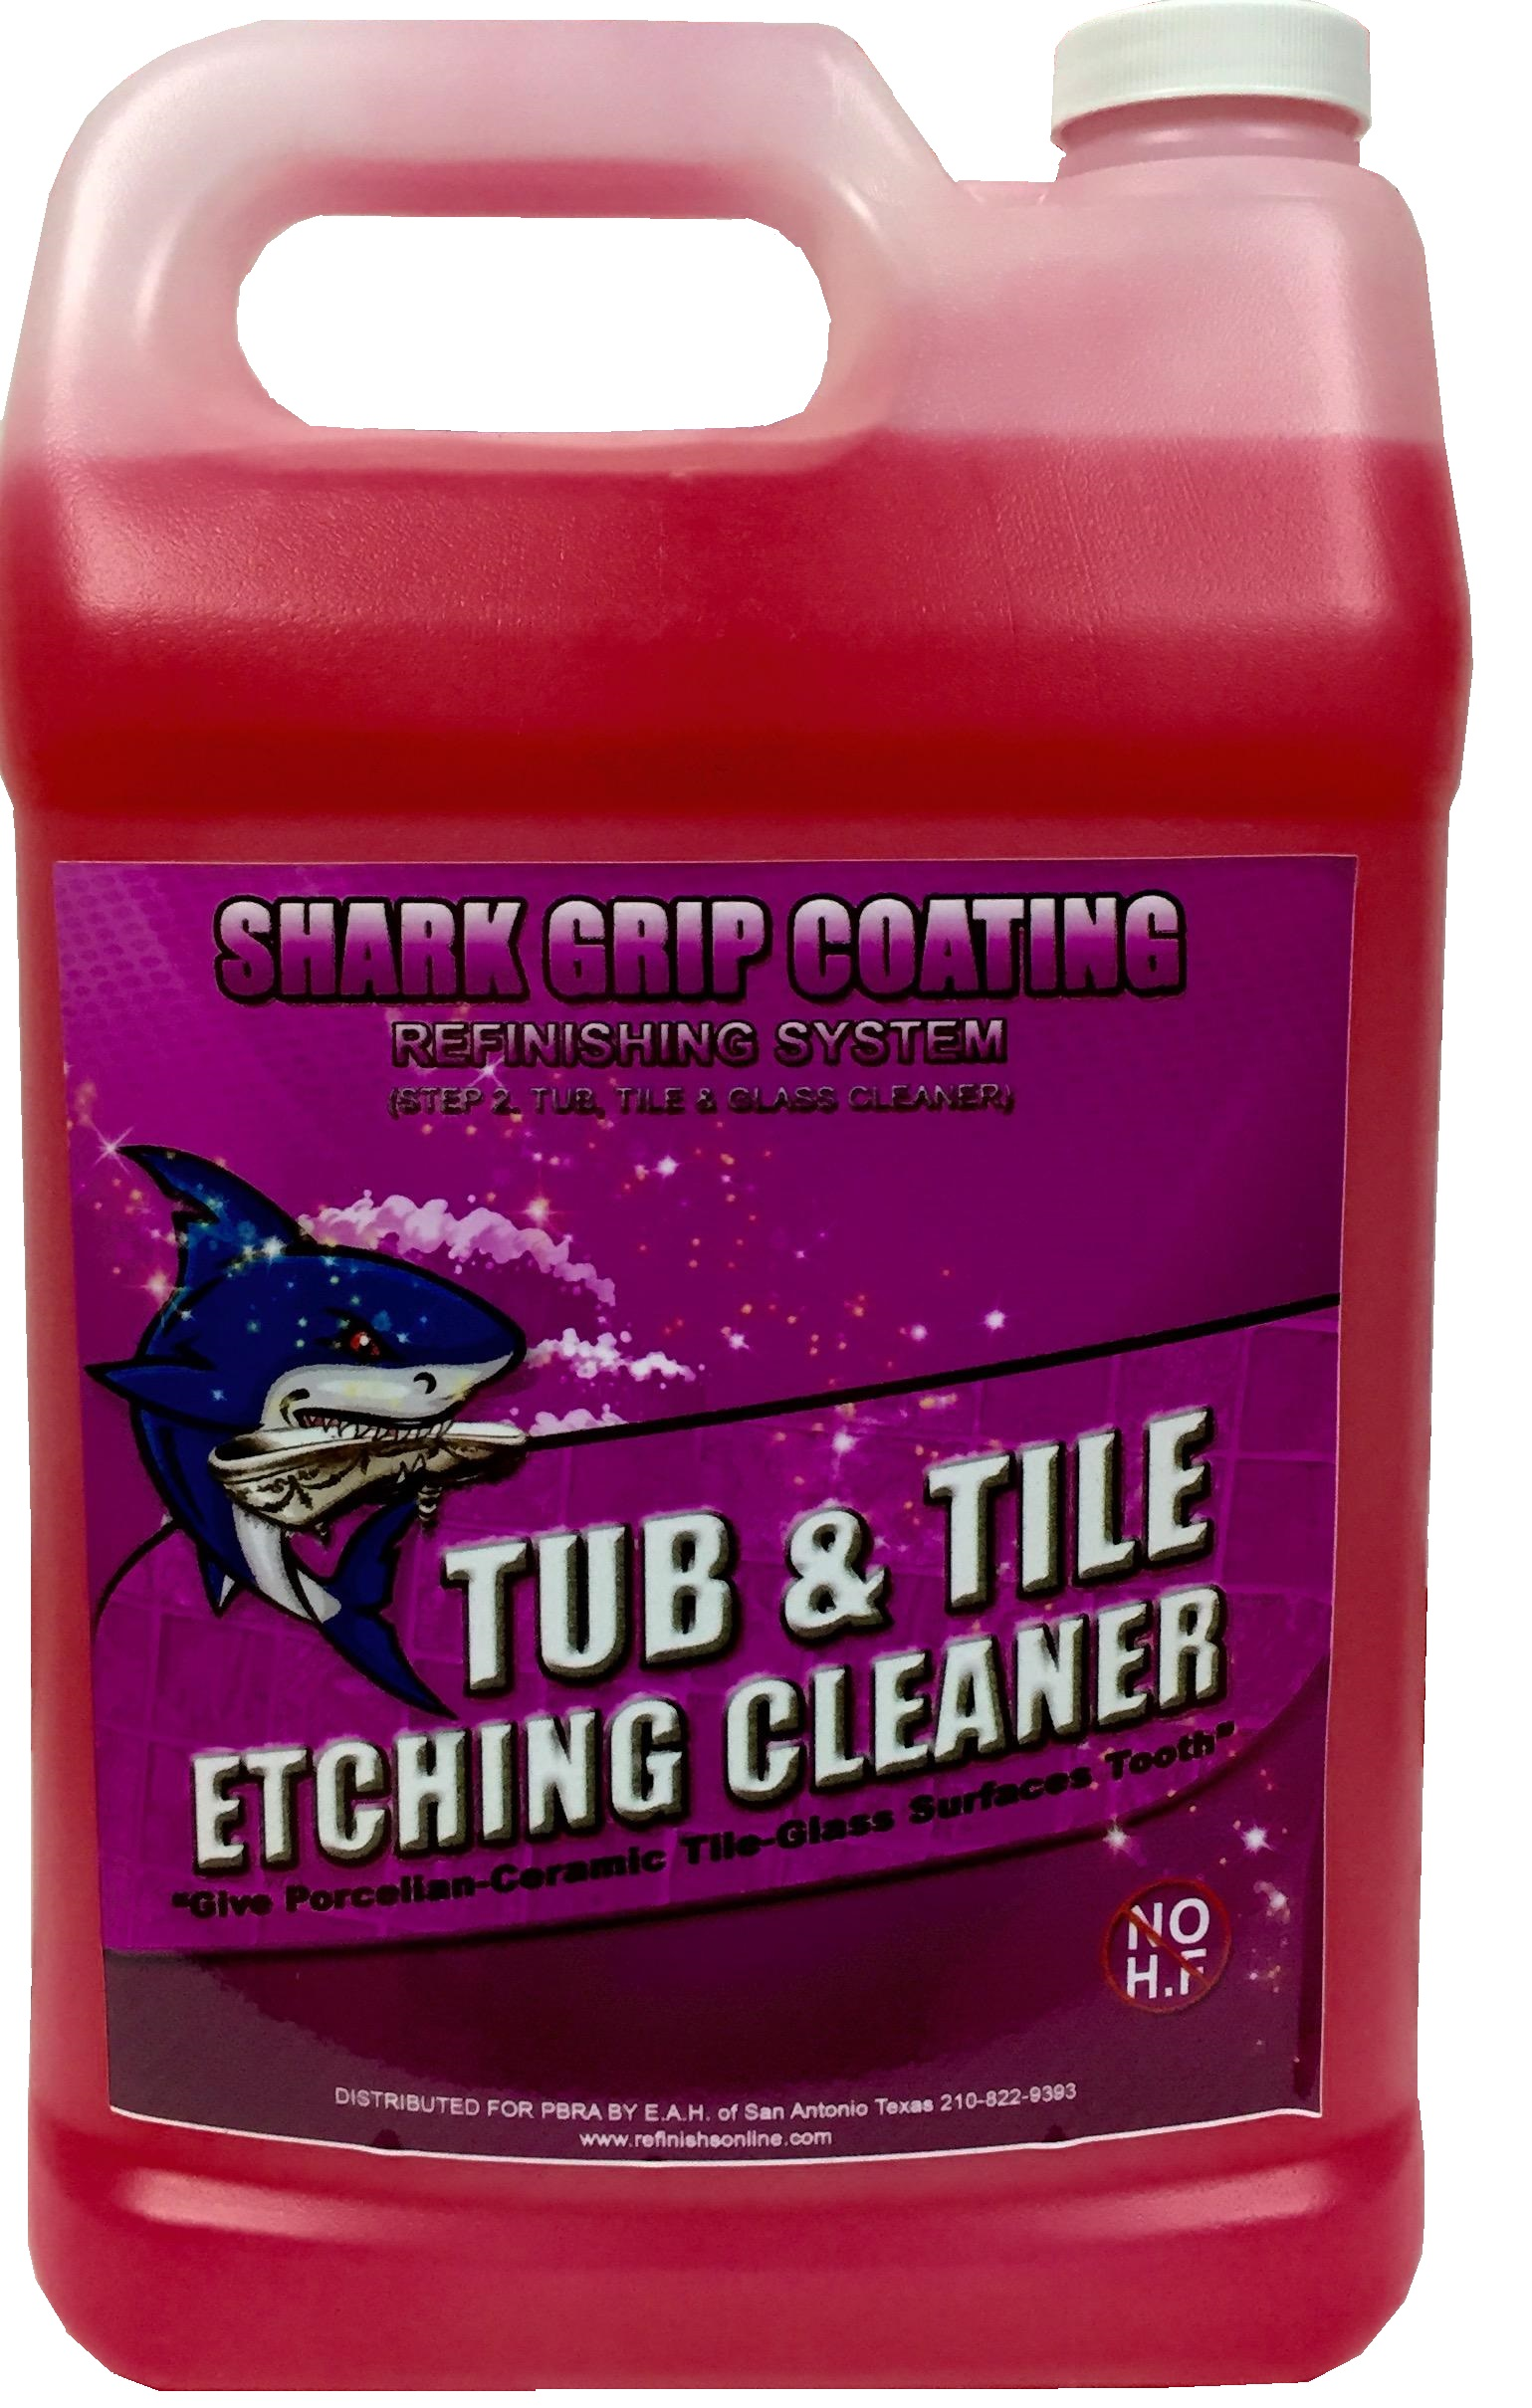 Porcelain Ceramic Glass Etching Cream Cleaner Bathtub